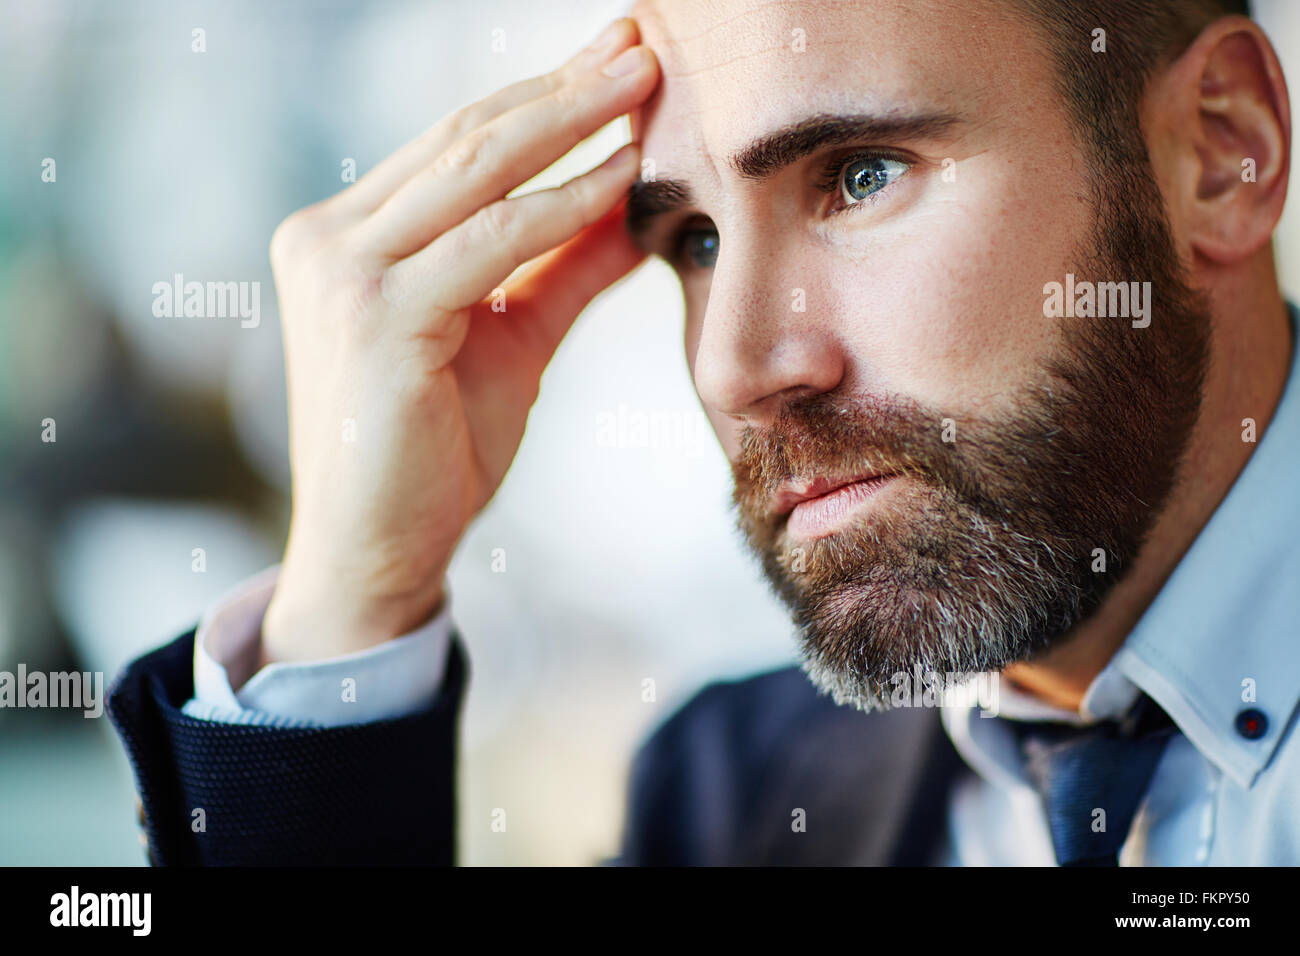 Bearded businessman contemplating about something - Stock Image